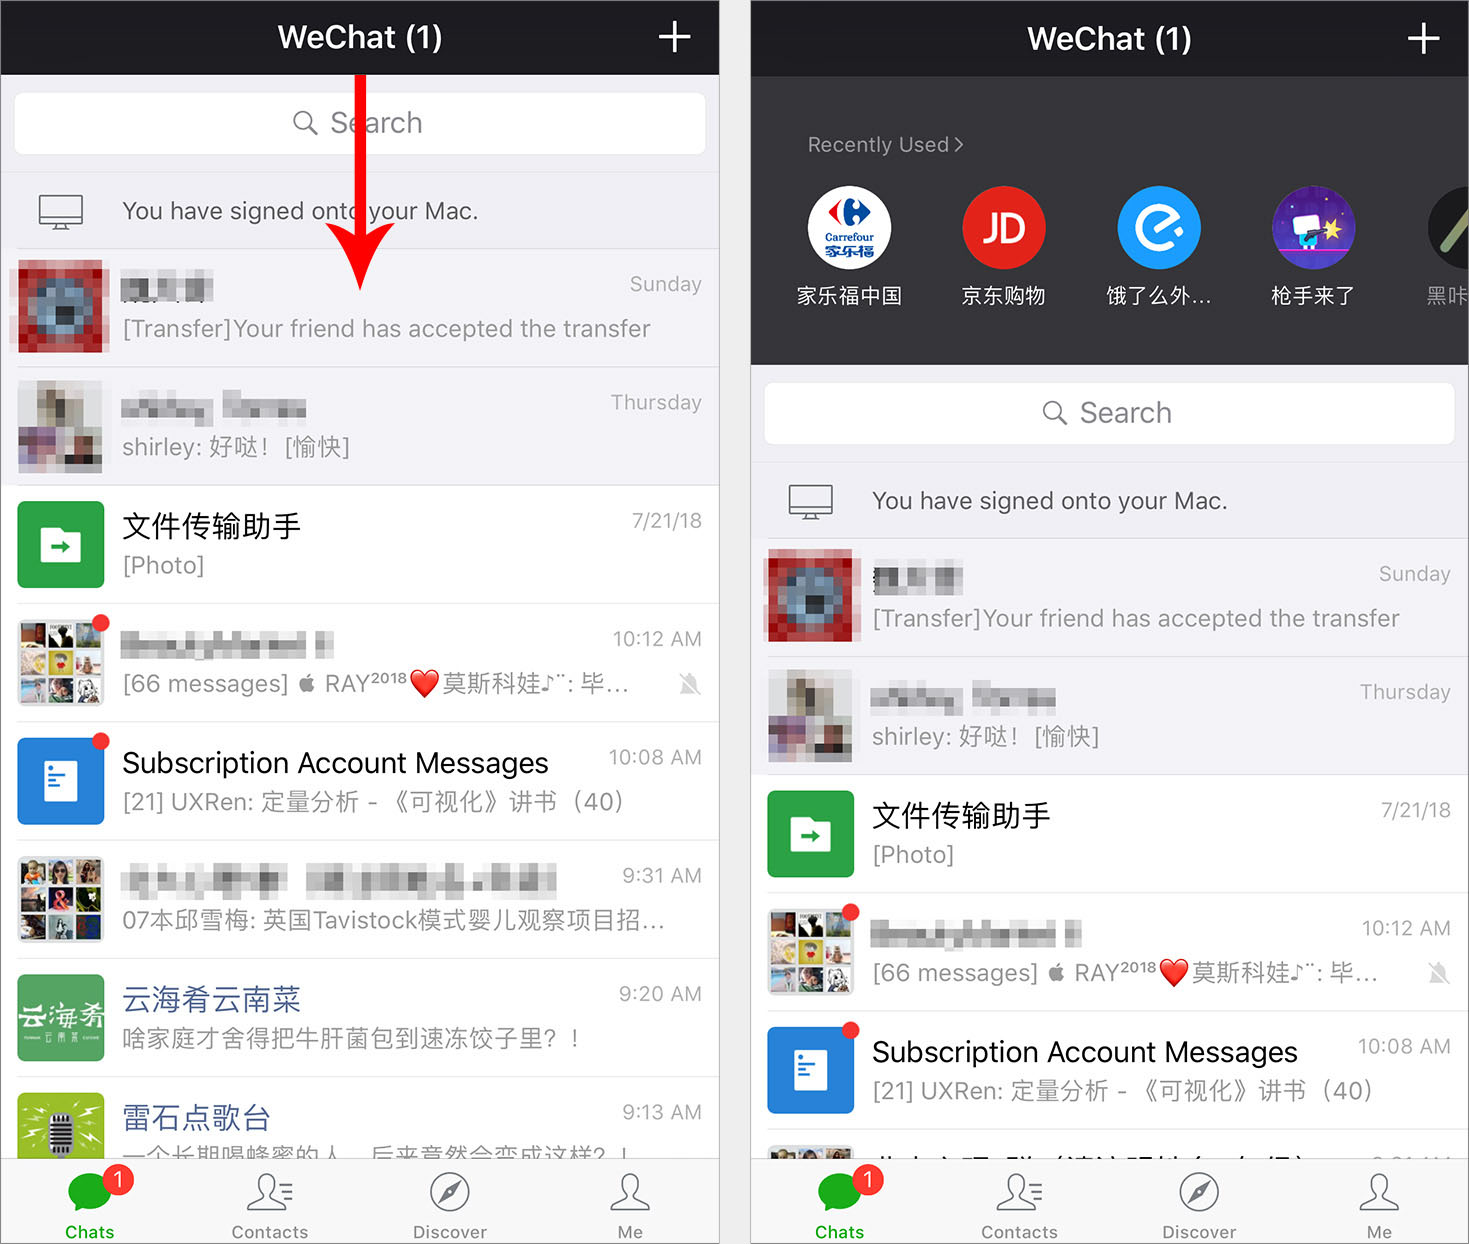 From the WeChat home screen (left), users swipe down to see a list of recently used mini programs (right).